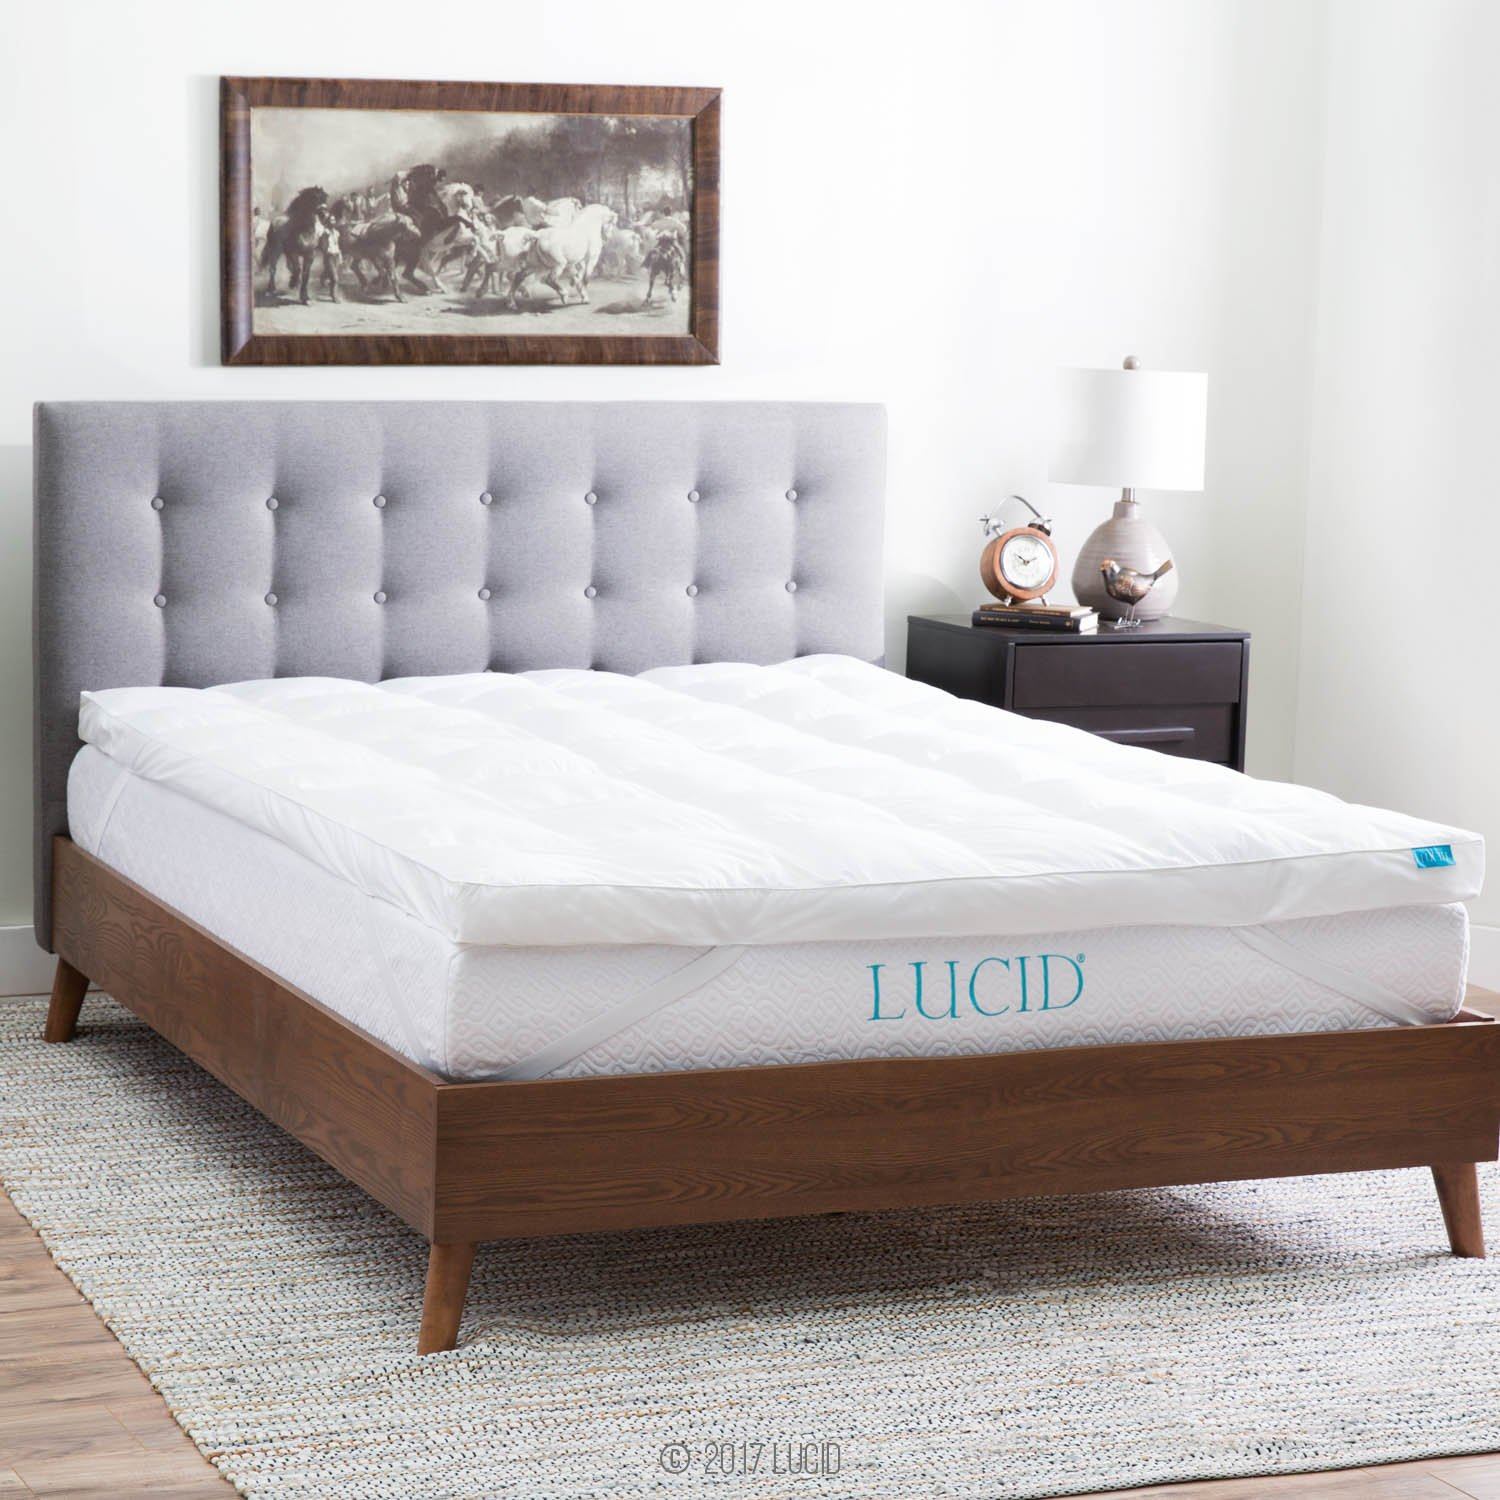 LUCID Plush Down Alternative Fiber Bed Topper - Allergen Free - King Size by Lucid®